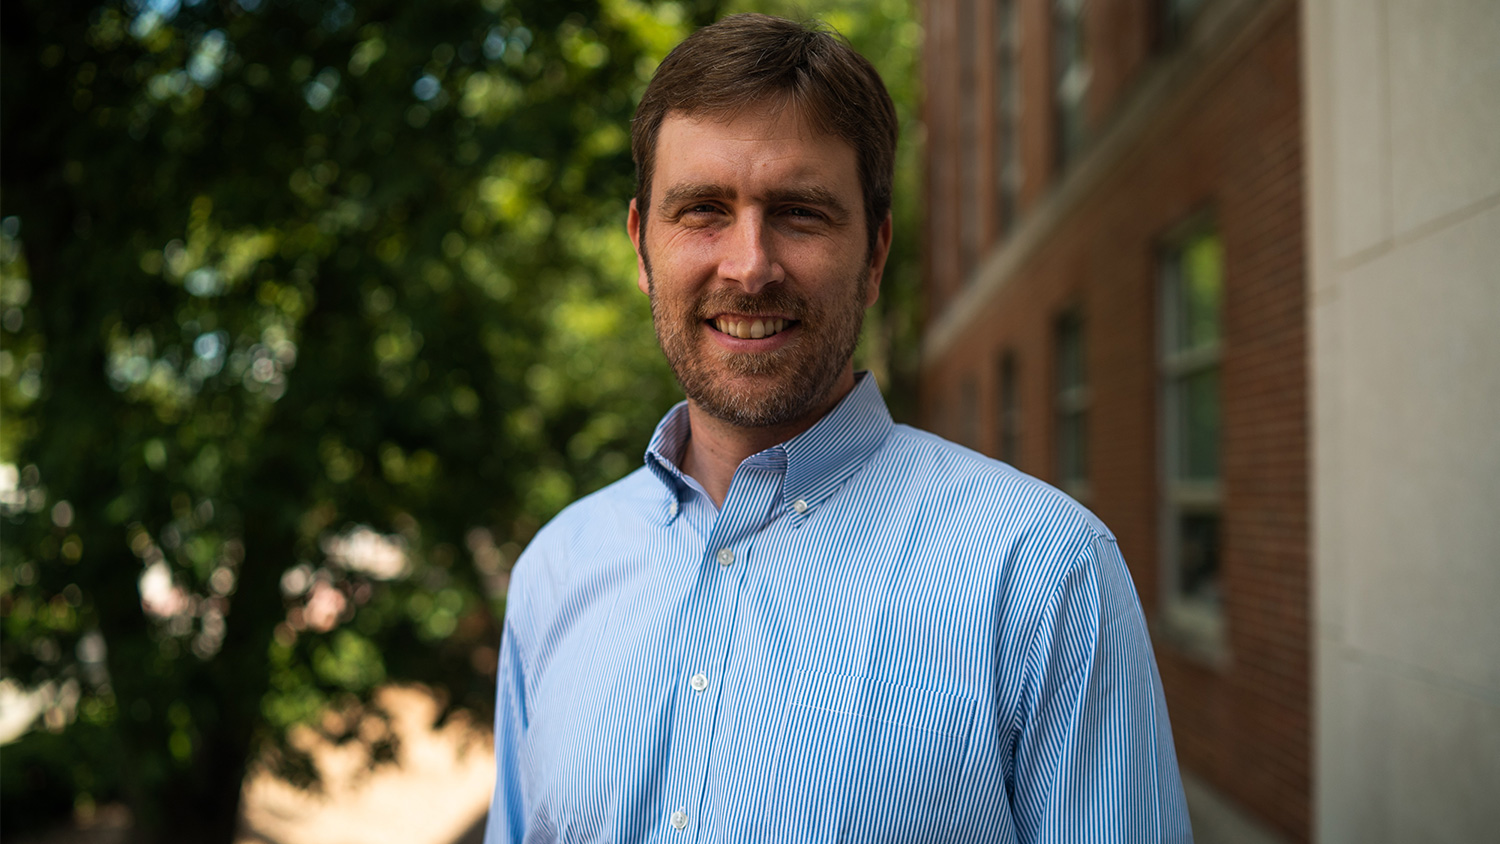 Tim Kraft, assistant professor of operations and supply chain management